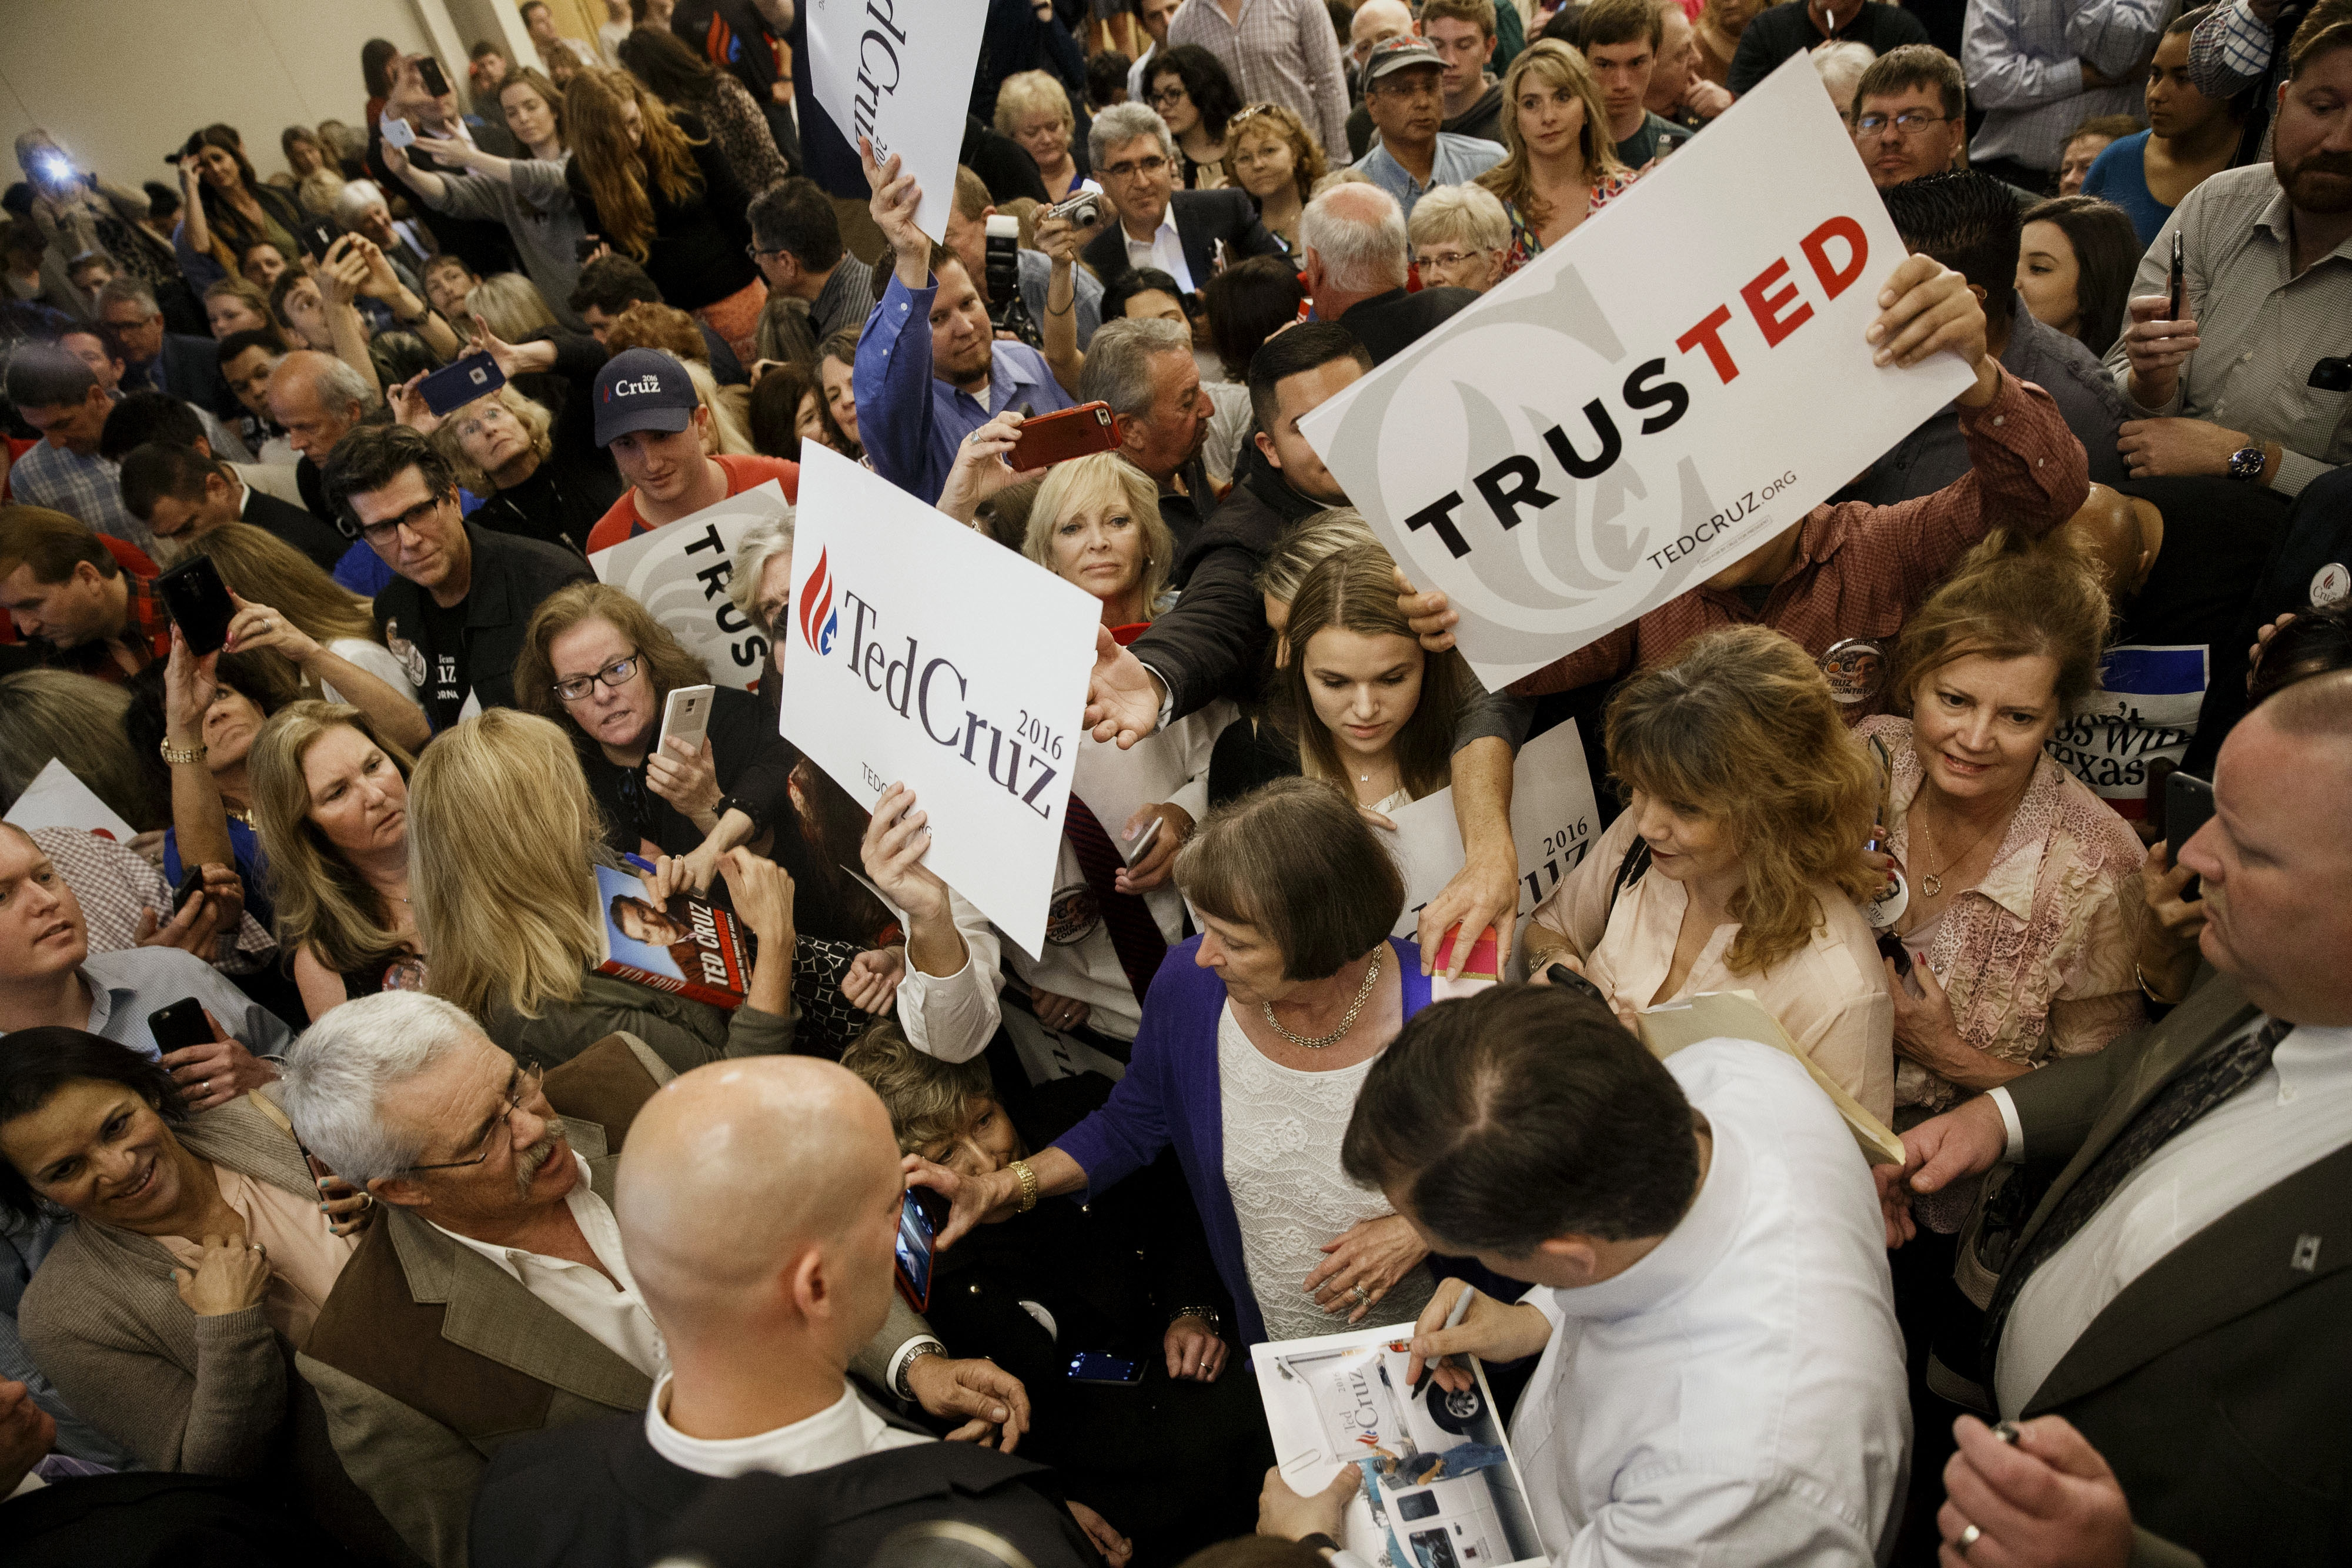 Republican presidential candidate Ted Cruz autographs items for his supporters at a campaign event in Irvine, Calif., on Monday. The Texas senator will be pushing for votes Thursday and Friday in Amherst, New York City, Binghamton, Syracuse and Rochester.